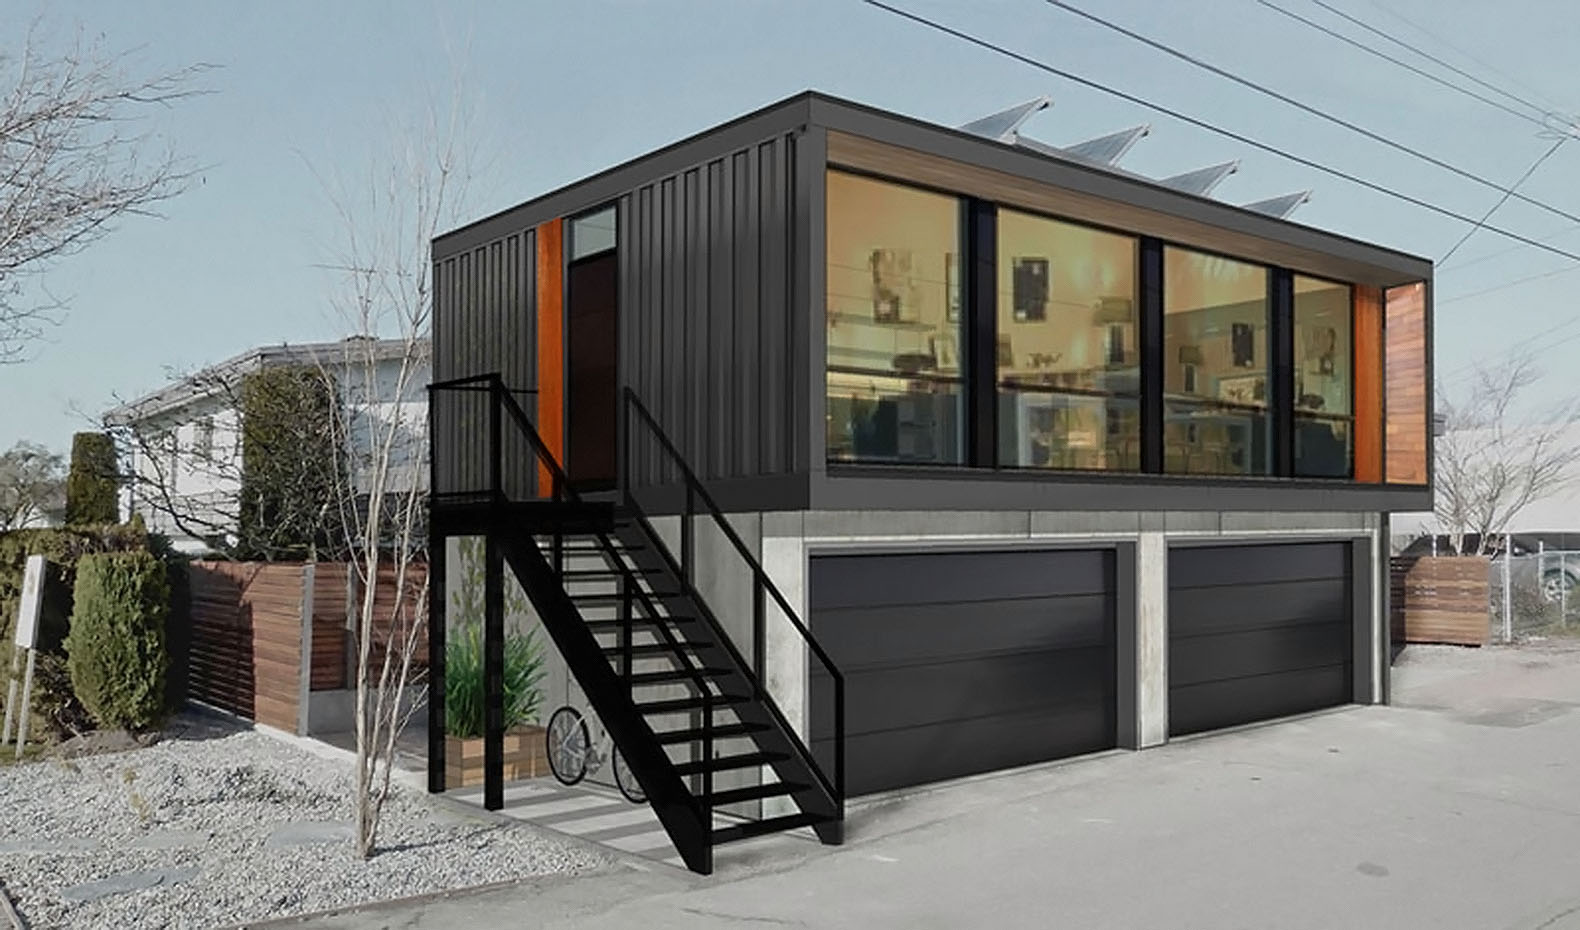 Best Kitchen Gallery: You Can Order Honomobo's Prefab Shipping Container Homes Online of Build From Shipping Container House on rachelxblog.com